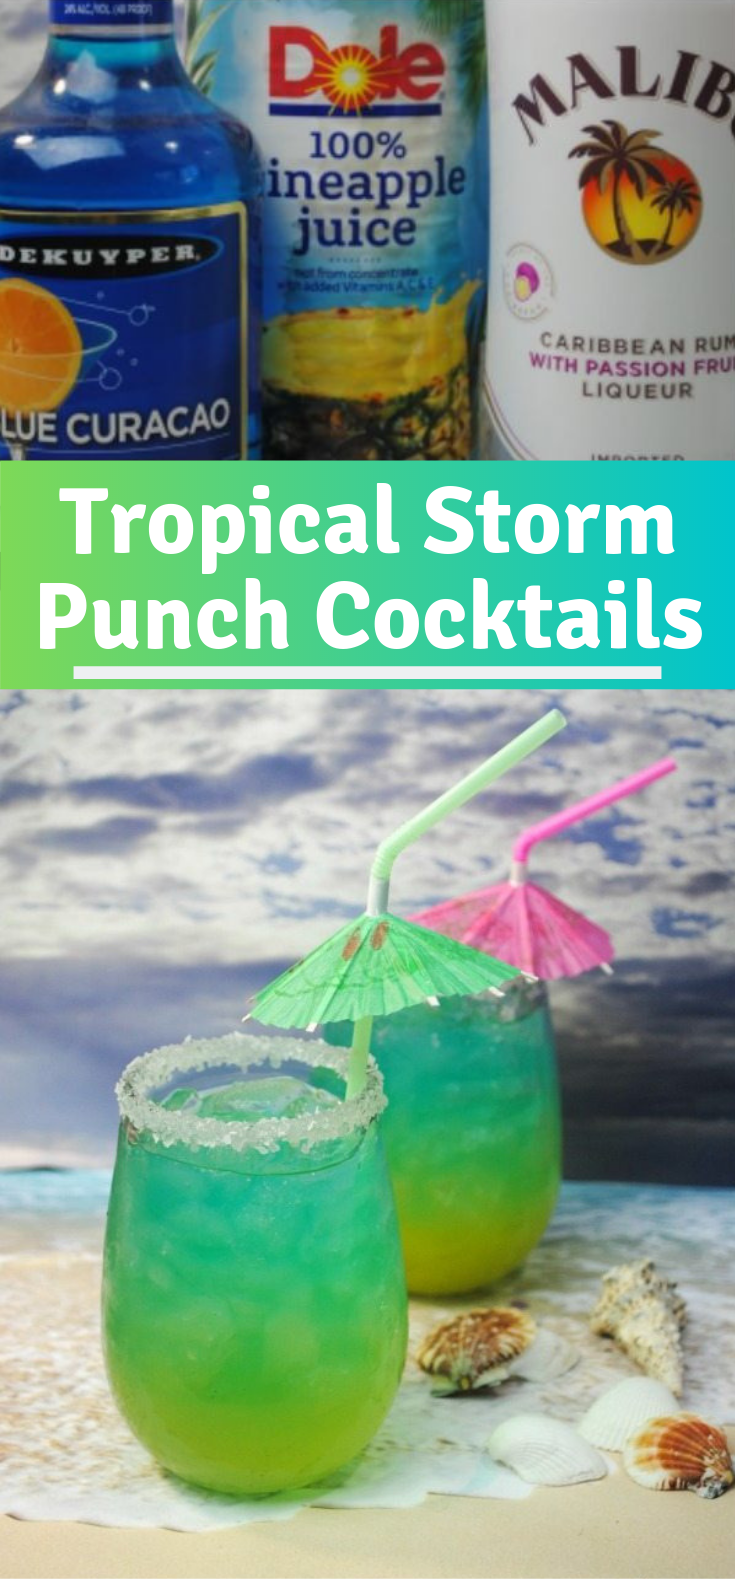 Tropical Storm Punch Cocktails #Drink #Summer